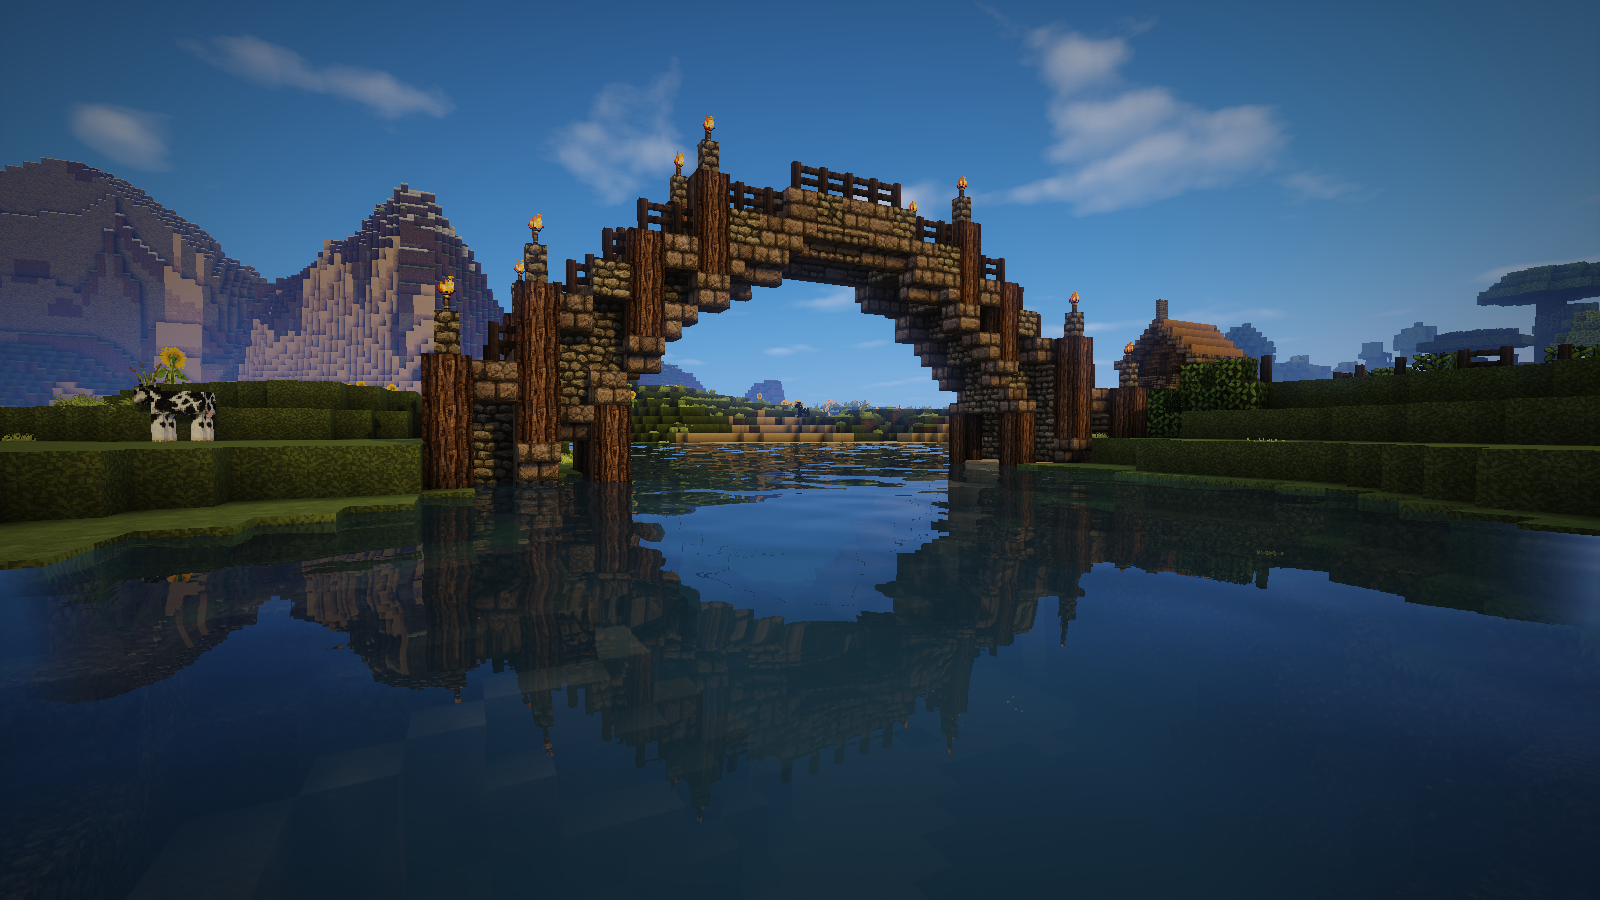 https://www.reddit.com/r/Minecraft/comments/4b4t20/it_might_not_be_as_large_as_some_of_bridges/